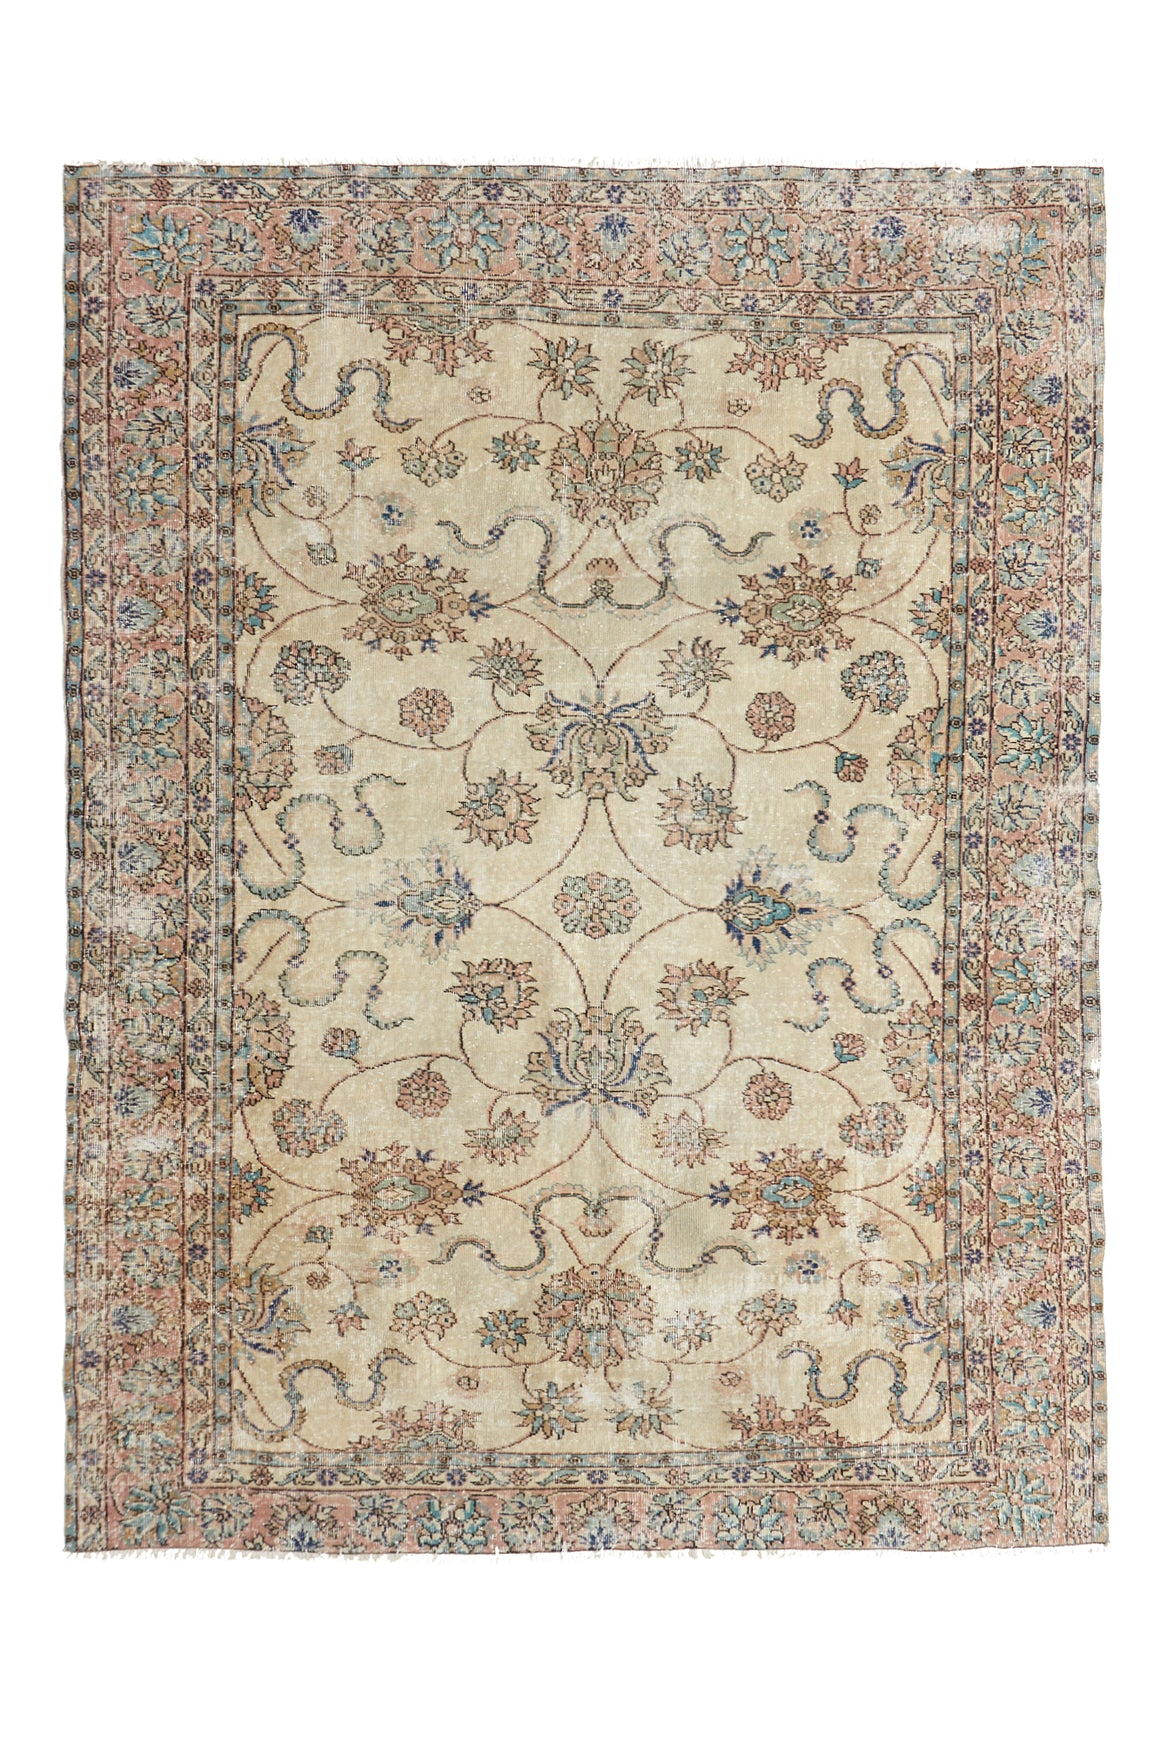 "'Libra' Turkish Vintage Area Rug - 6'8"" x 8'11"" - Canary Lane - Curated Textiles"